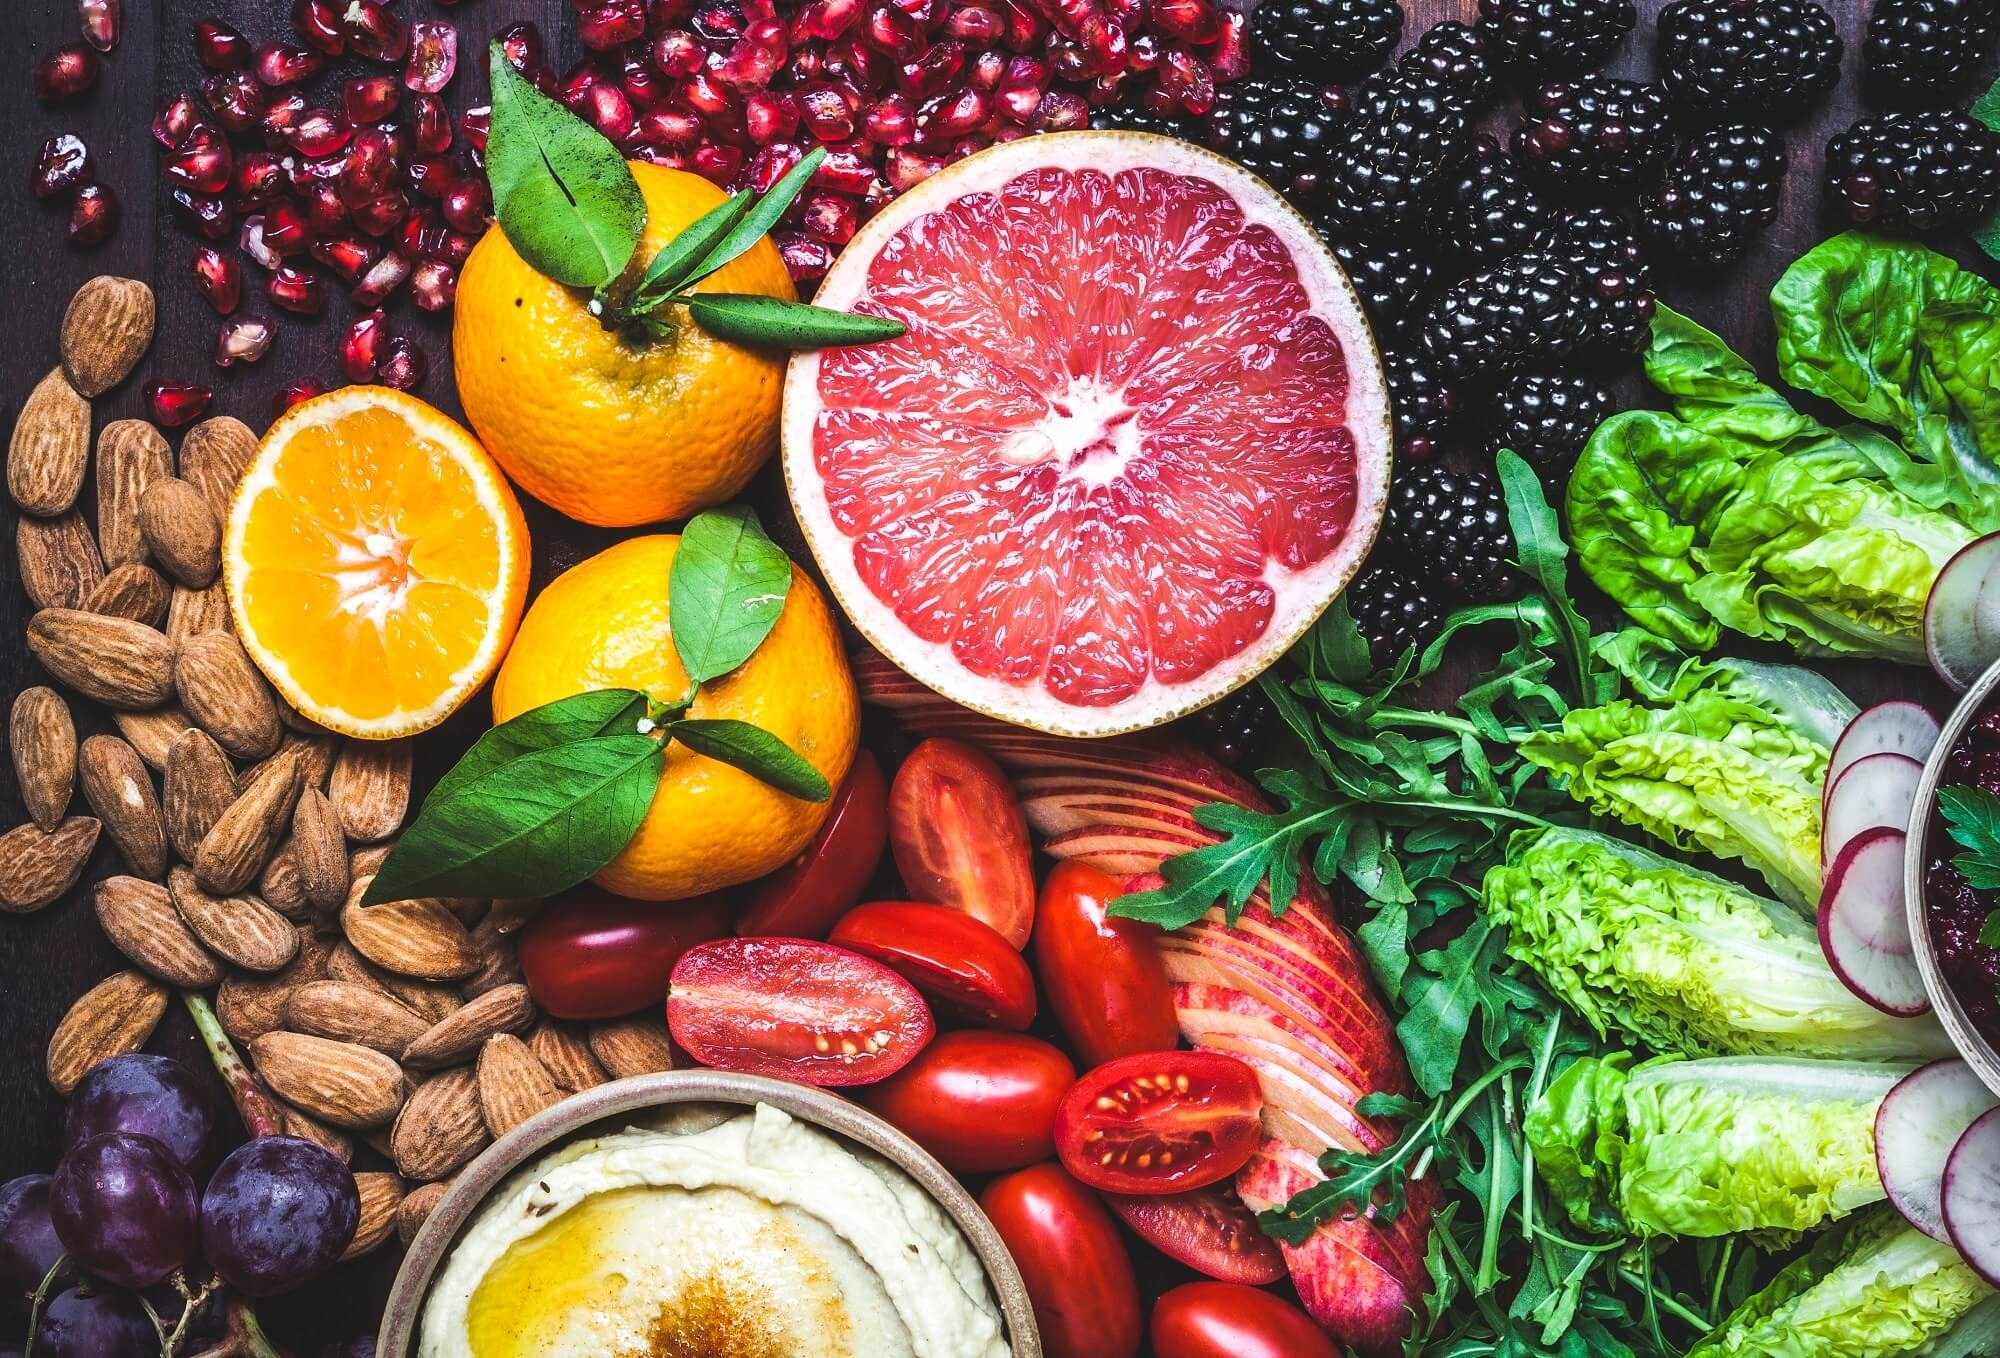 This study presents strong evidence for an association between a healthy diet and hippocampal volumes.